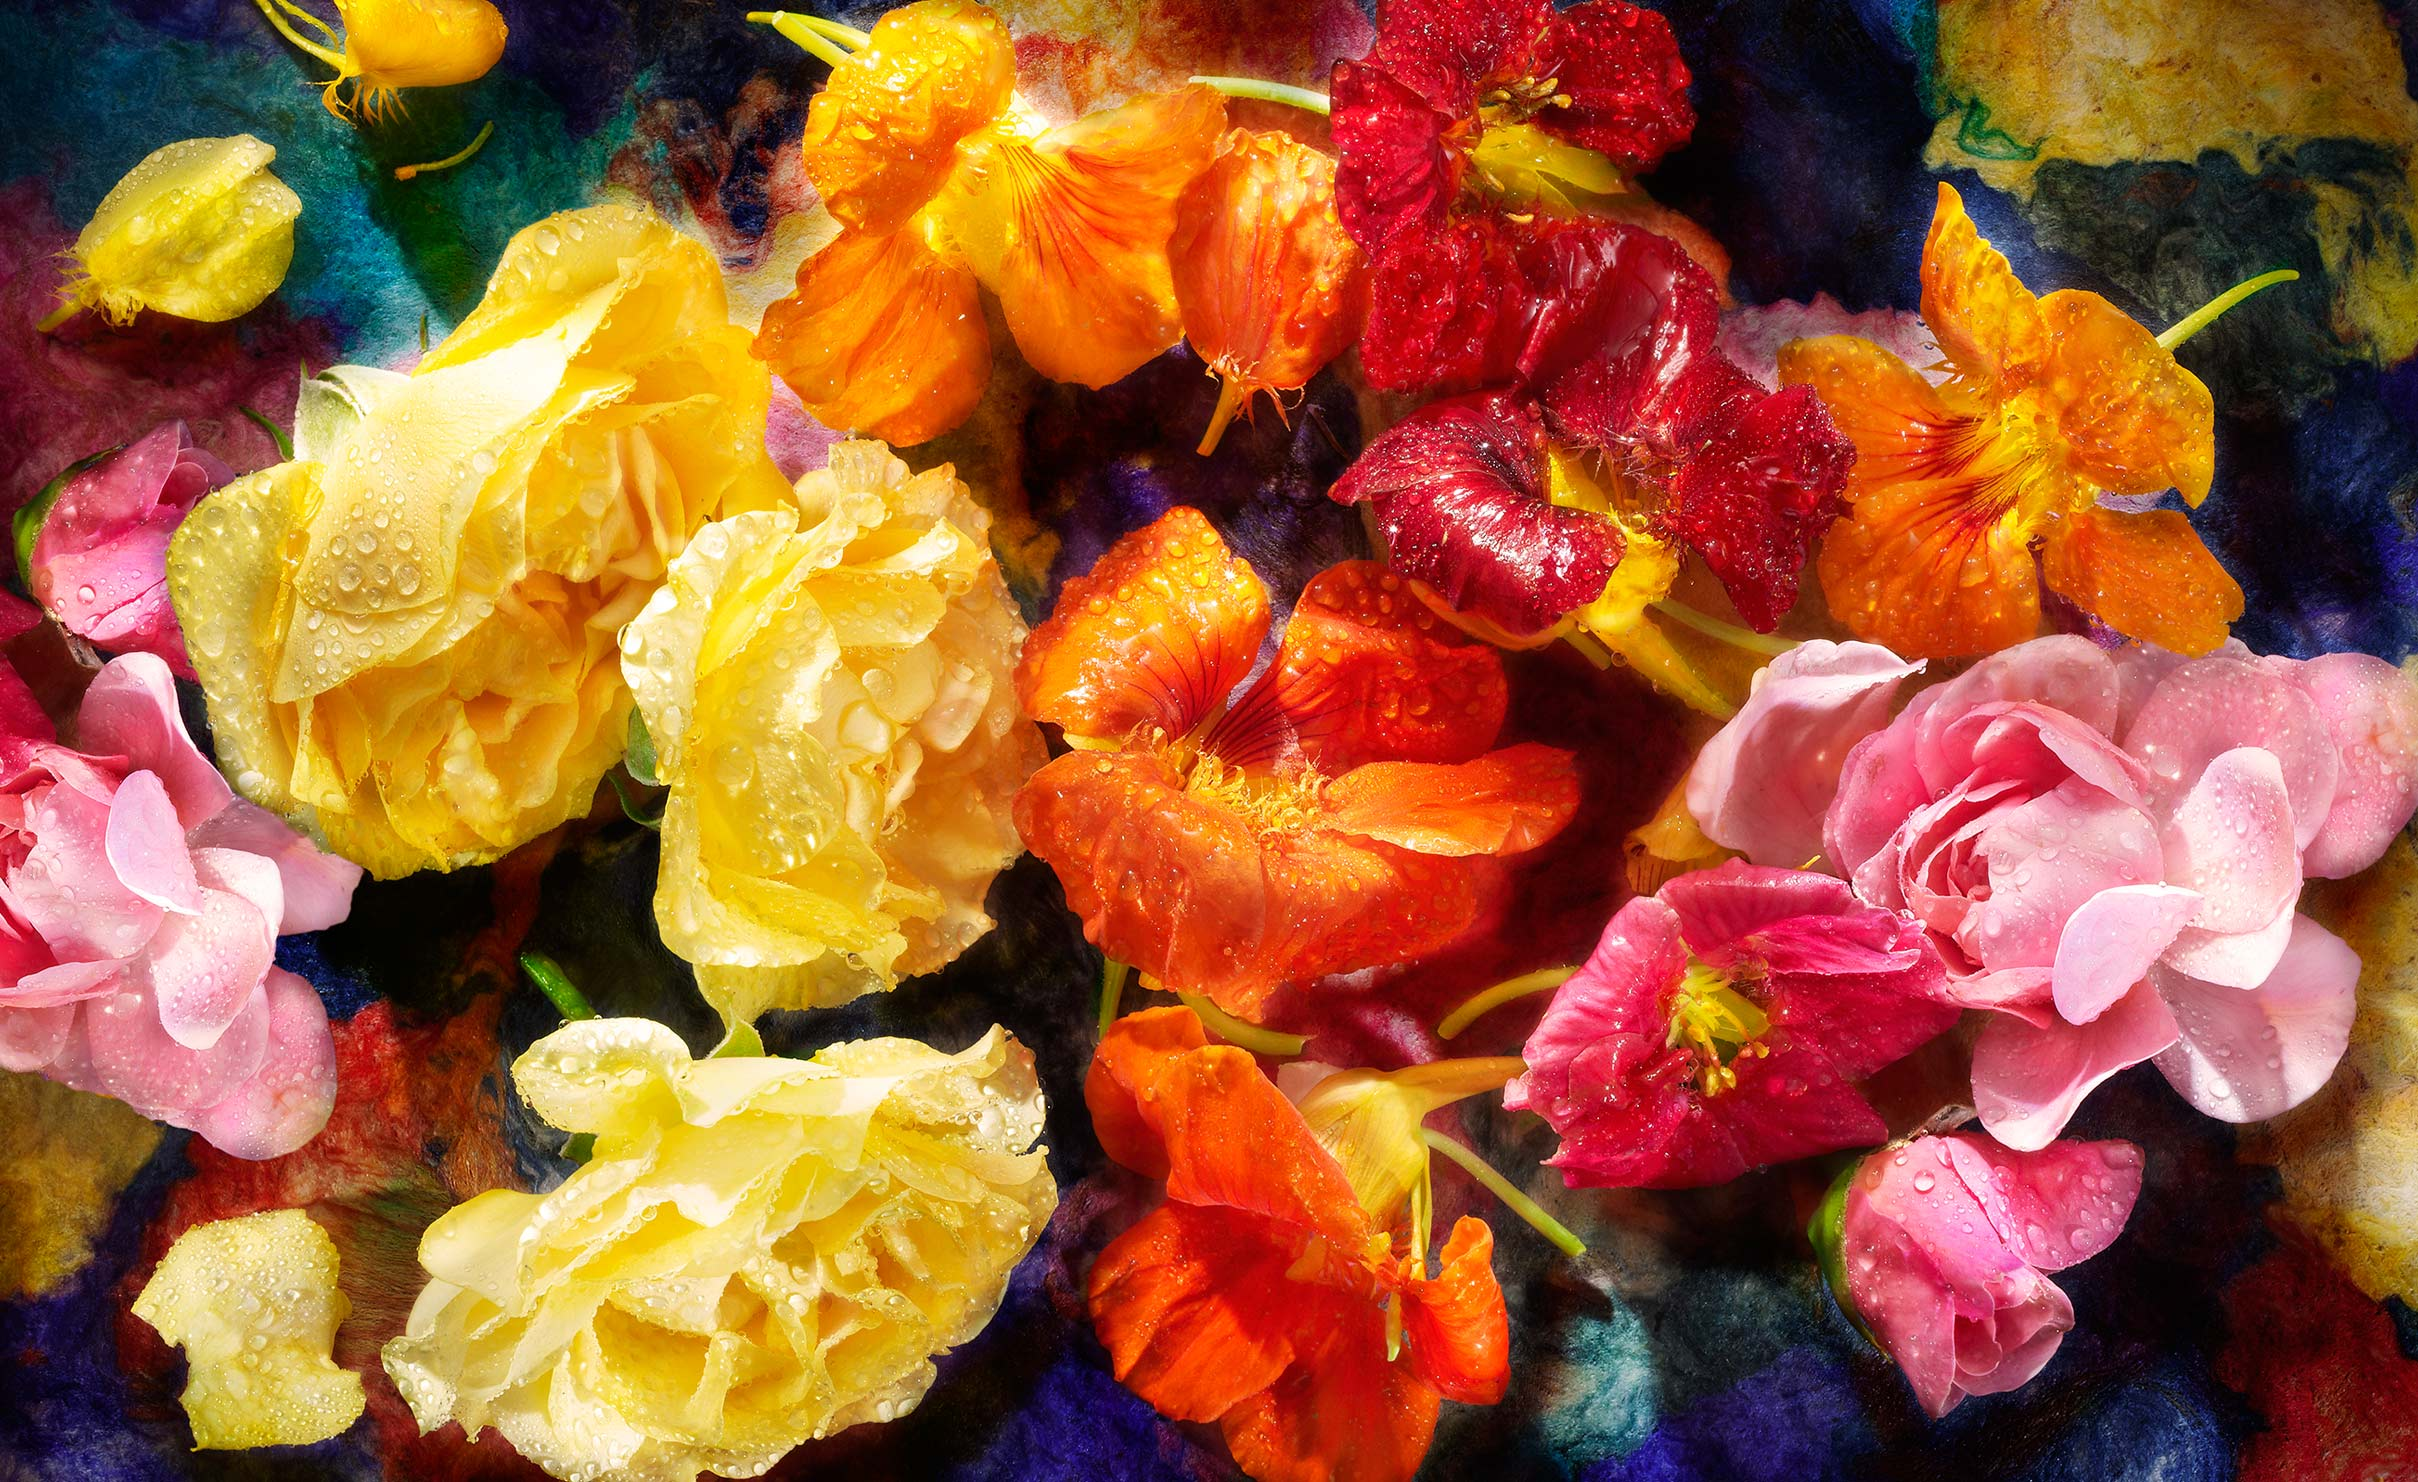 edible Roses and Nastursium flowers shot on a painted background